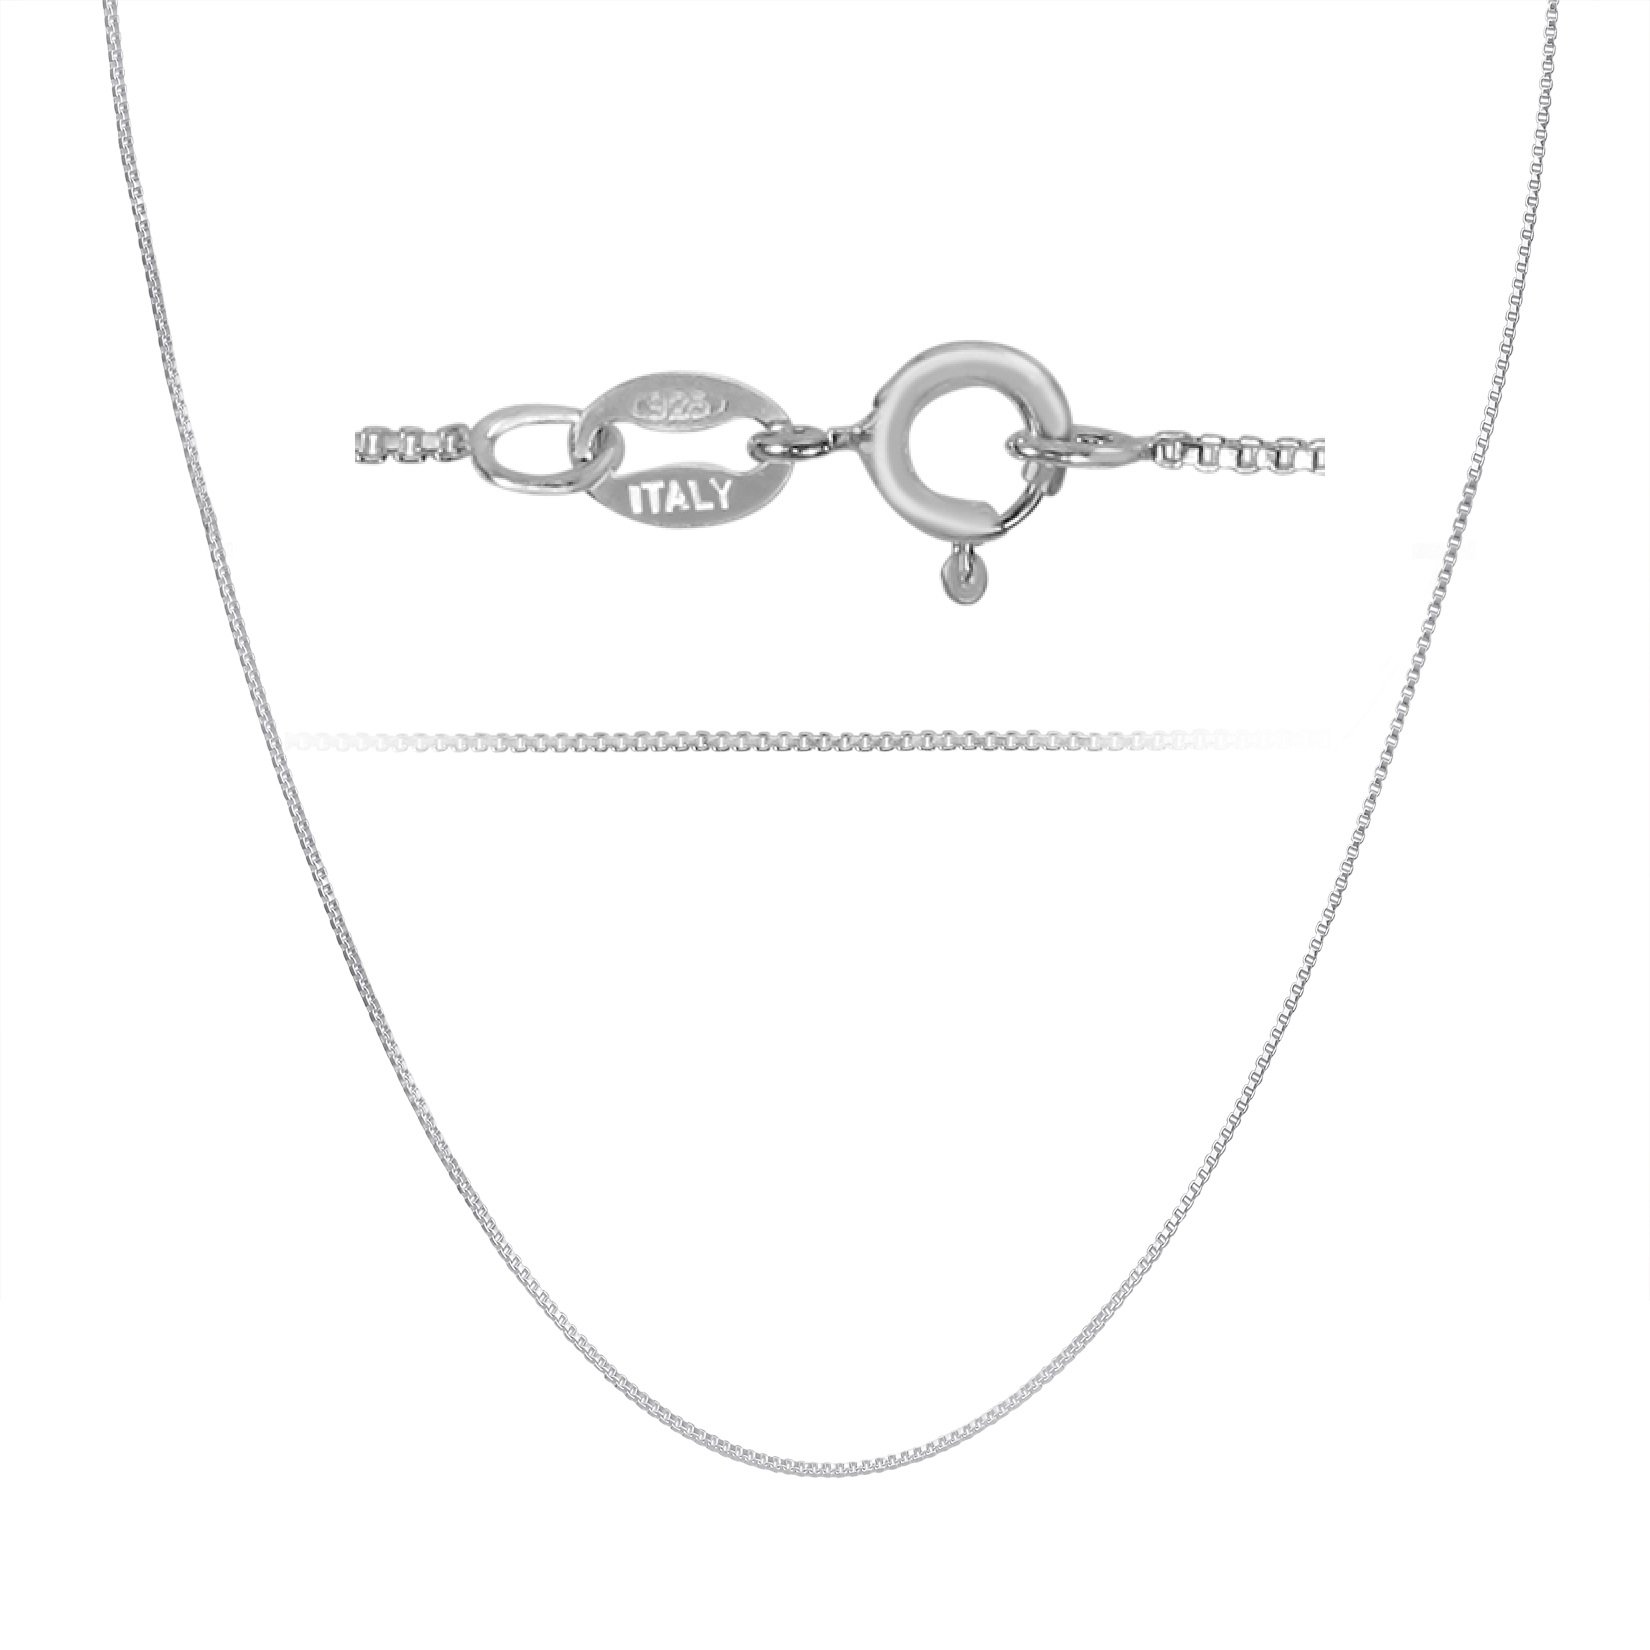 Kezef 925 Sterling Silver Box Chain Necklace .7mm Sturdy Thin Nickel Free Made in Italy 28'' inch